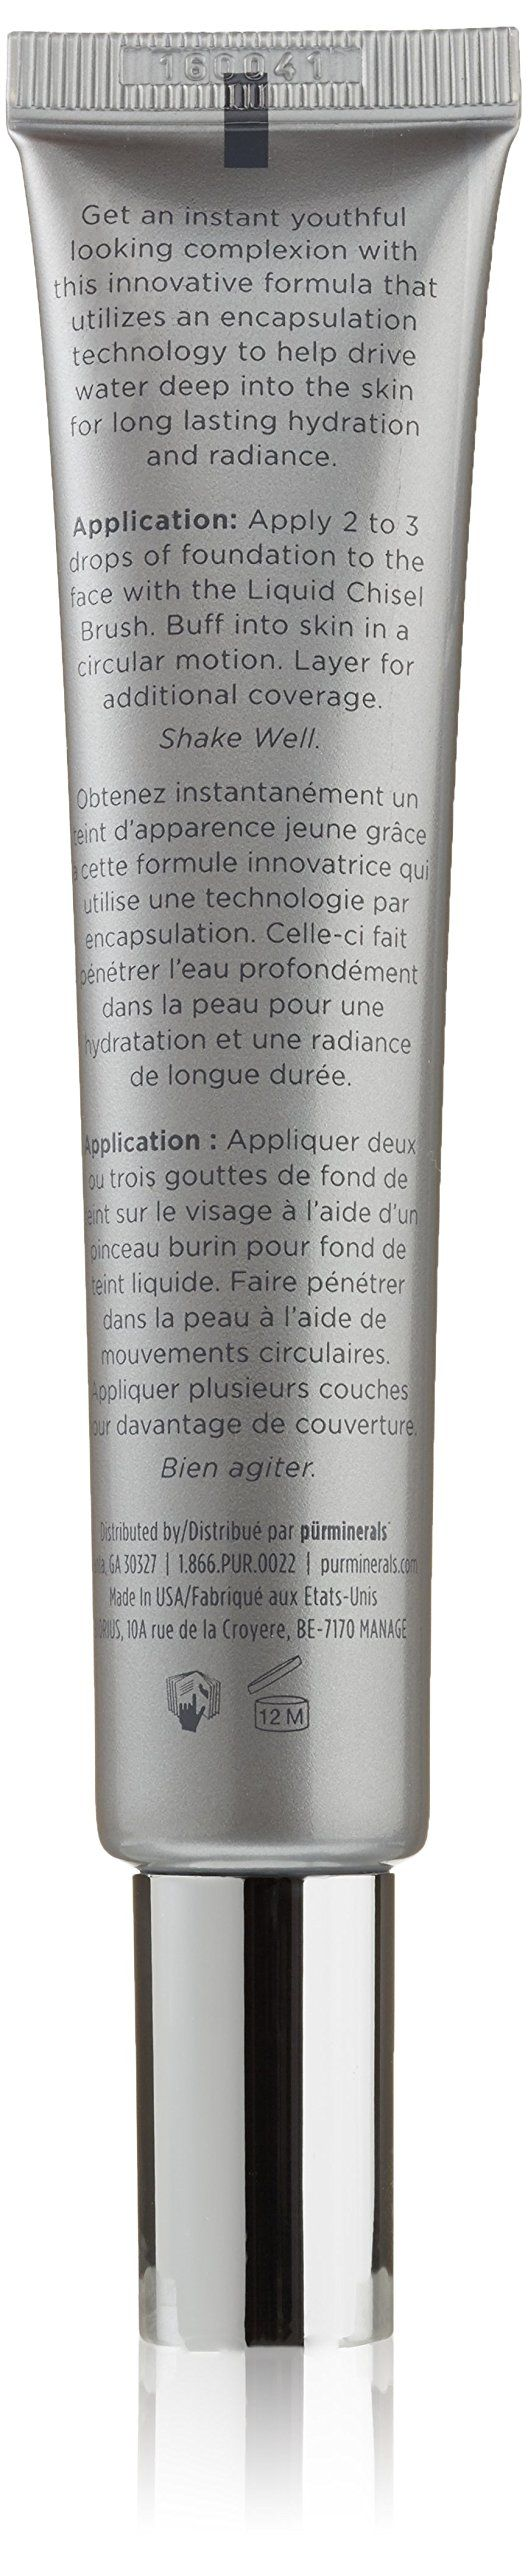 Paœr Hydrafluid Water Serum Foundation In Deep 1 Ounce More Info Could Be Found At The Image Url Note Amazon Affiliate Link Foundation How To Apply Serum